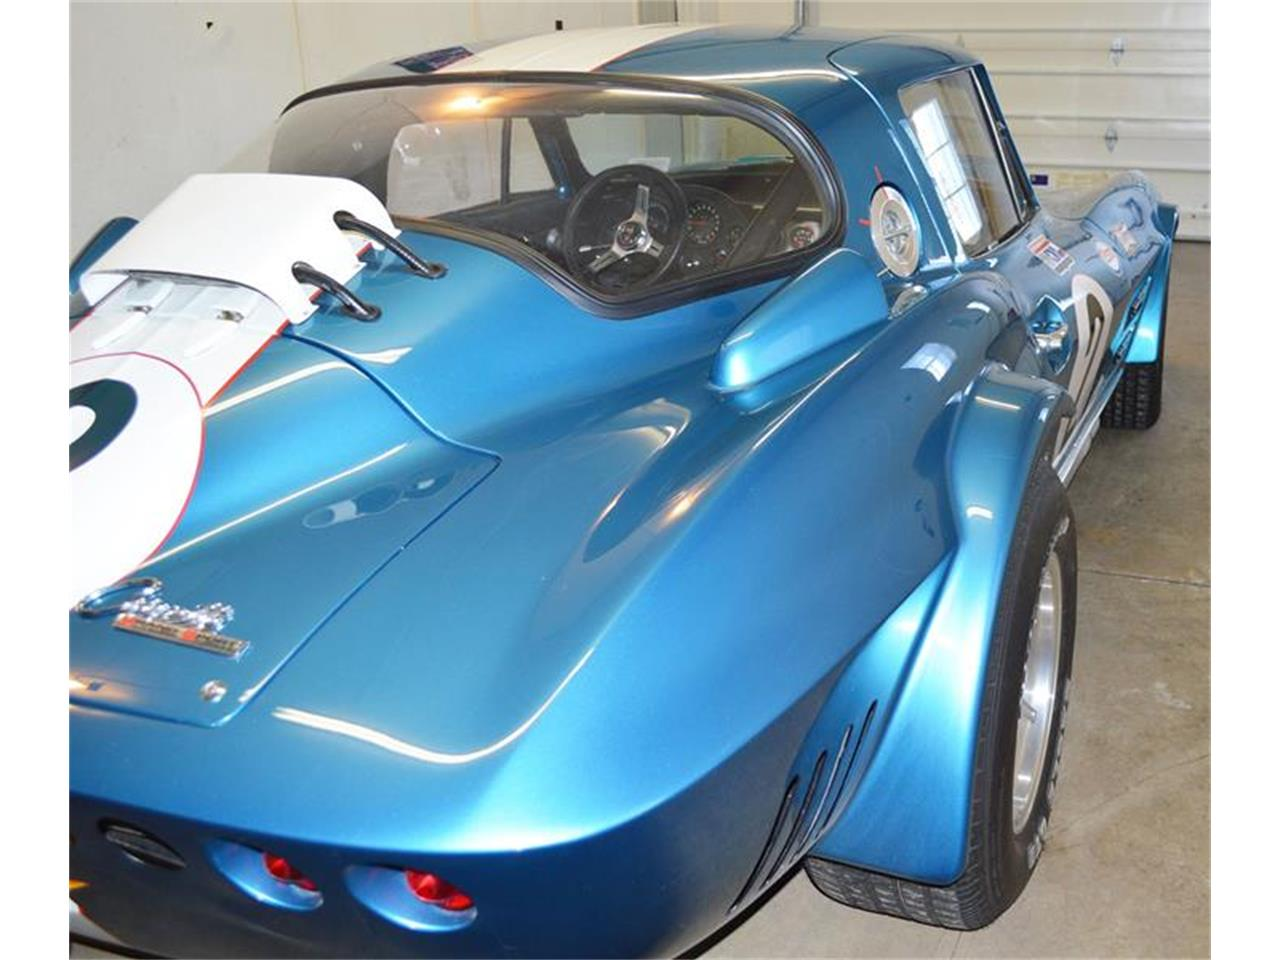 Large Picture of '63 Corvette located in New York - $99,900.00 Offered by AB Classic Cars - PUBP